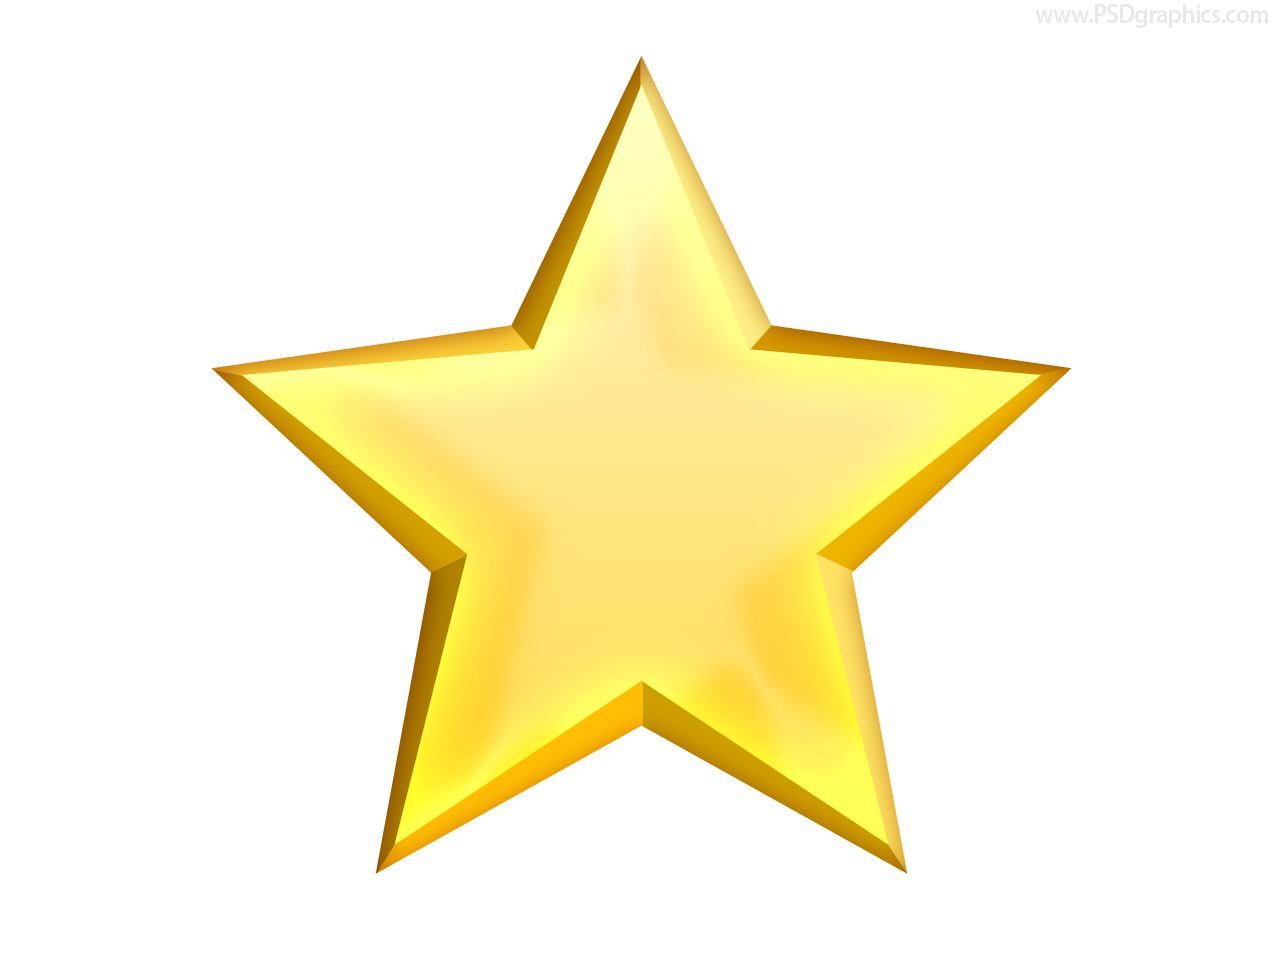 6 Small Star Icon Images